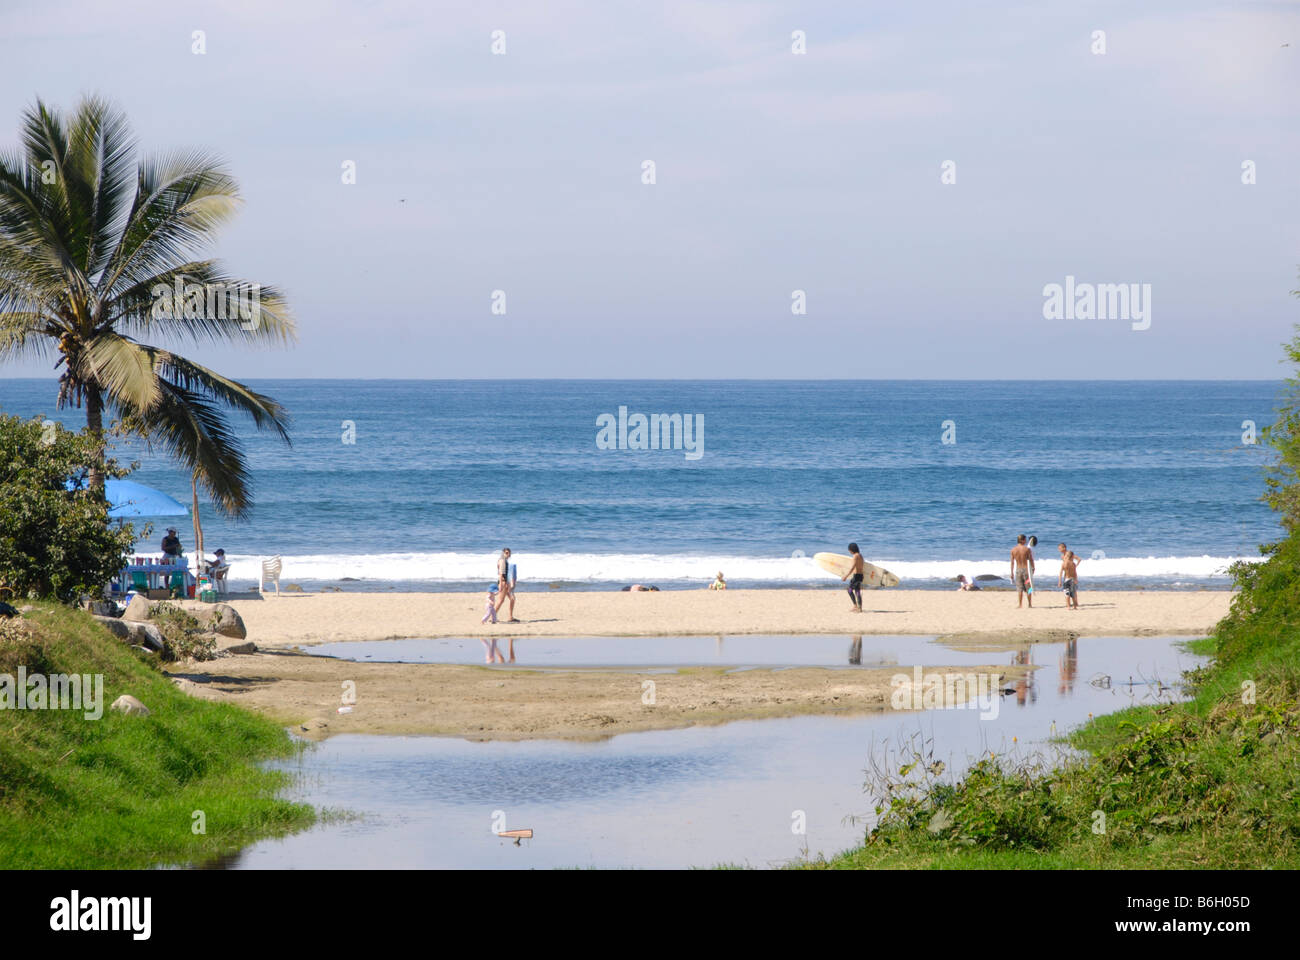 view of lagoon with tropical vegetation opening onto bright variegated beach scene on a sunny day in Sayulita, Mexico - Stock Image